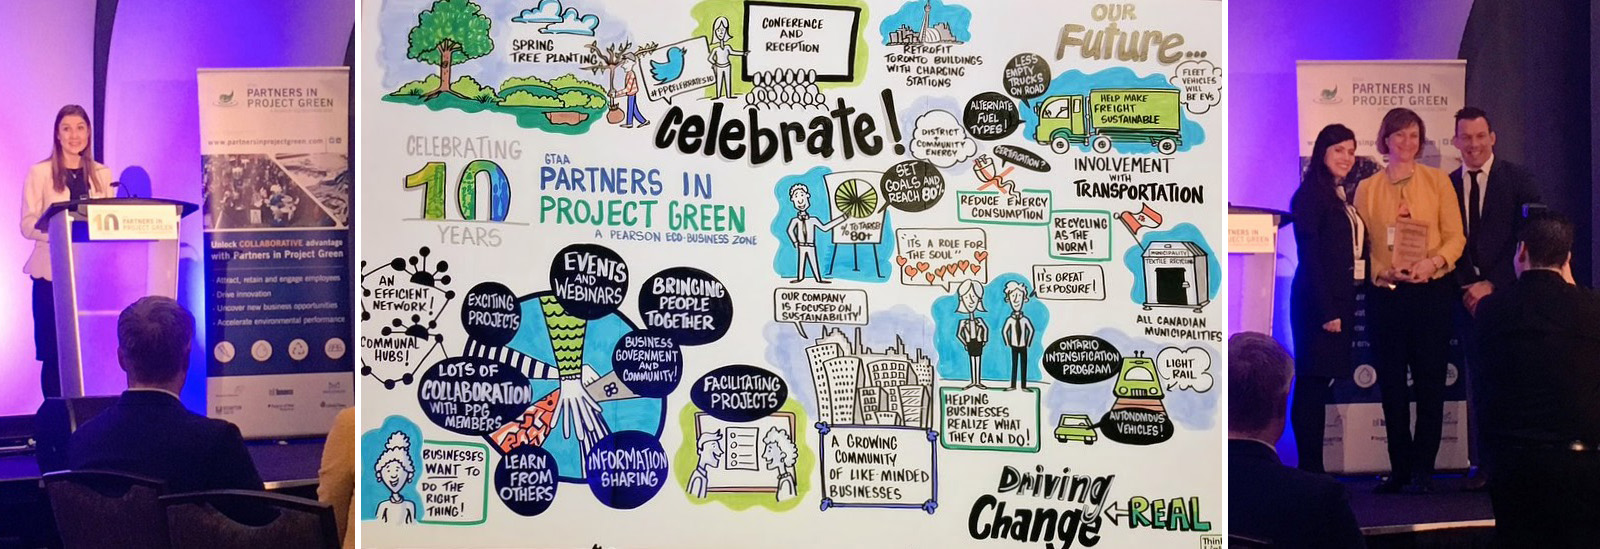 scenes from Partners in Project Green sustainable business celebration